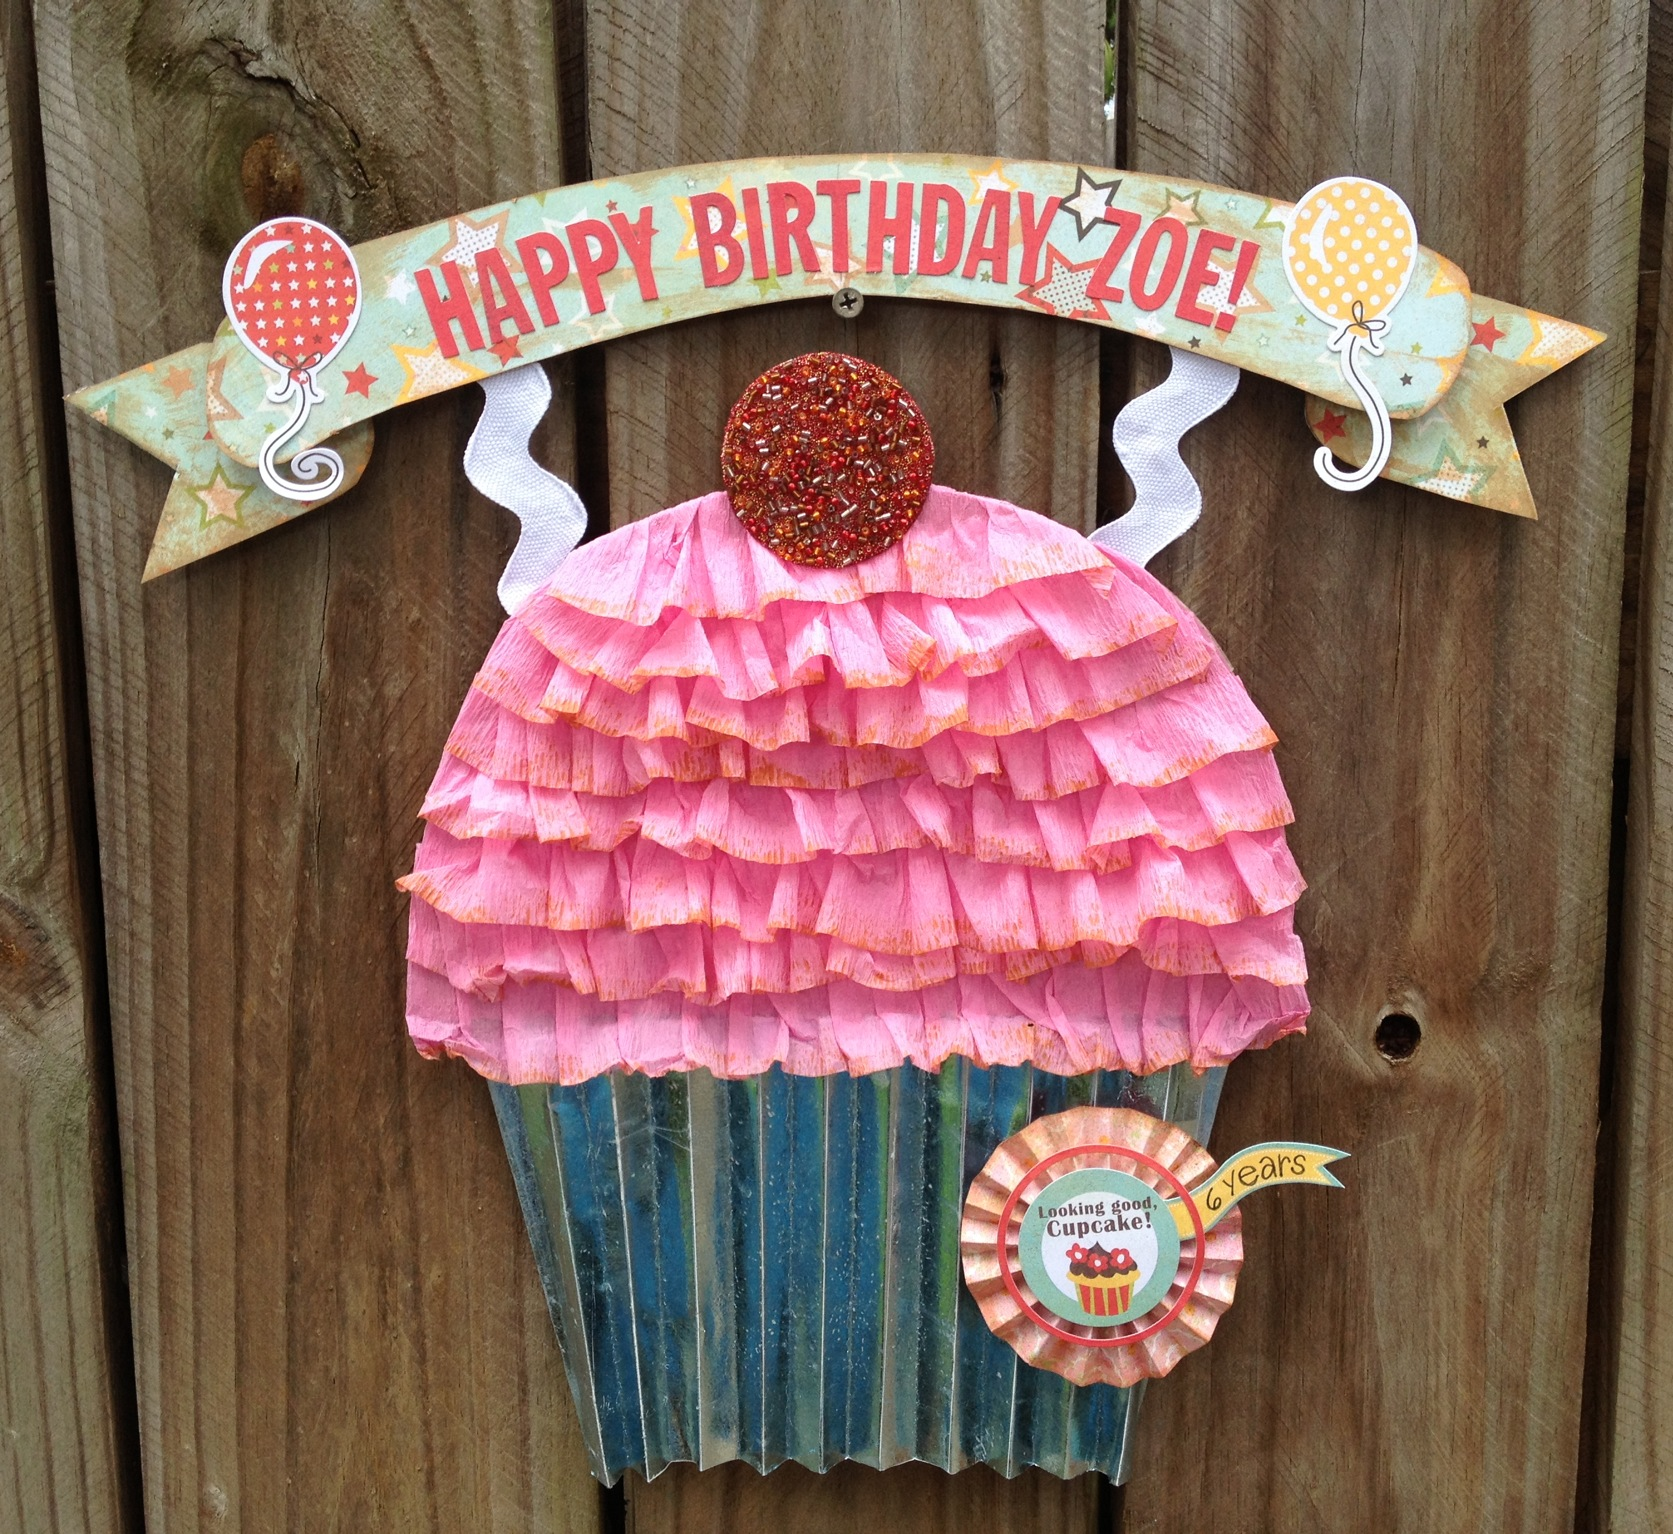 Party Decor Birthday Cupcake Door Hanging Kool Tak